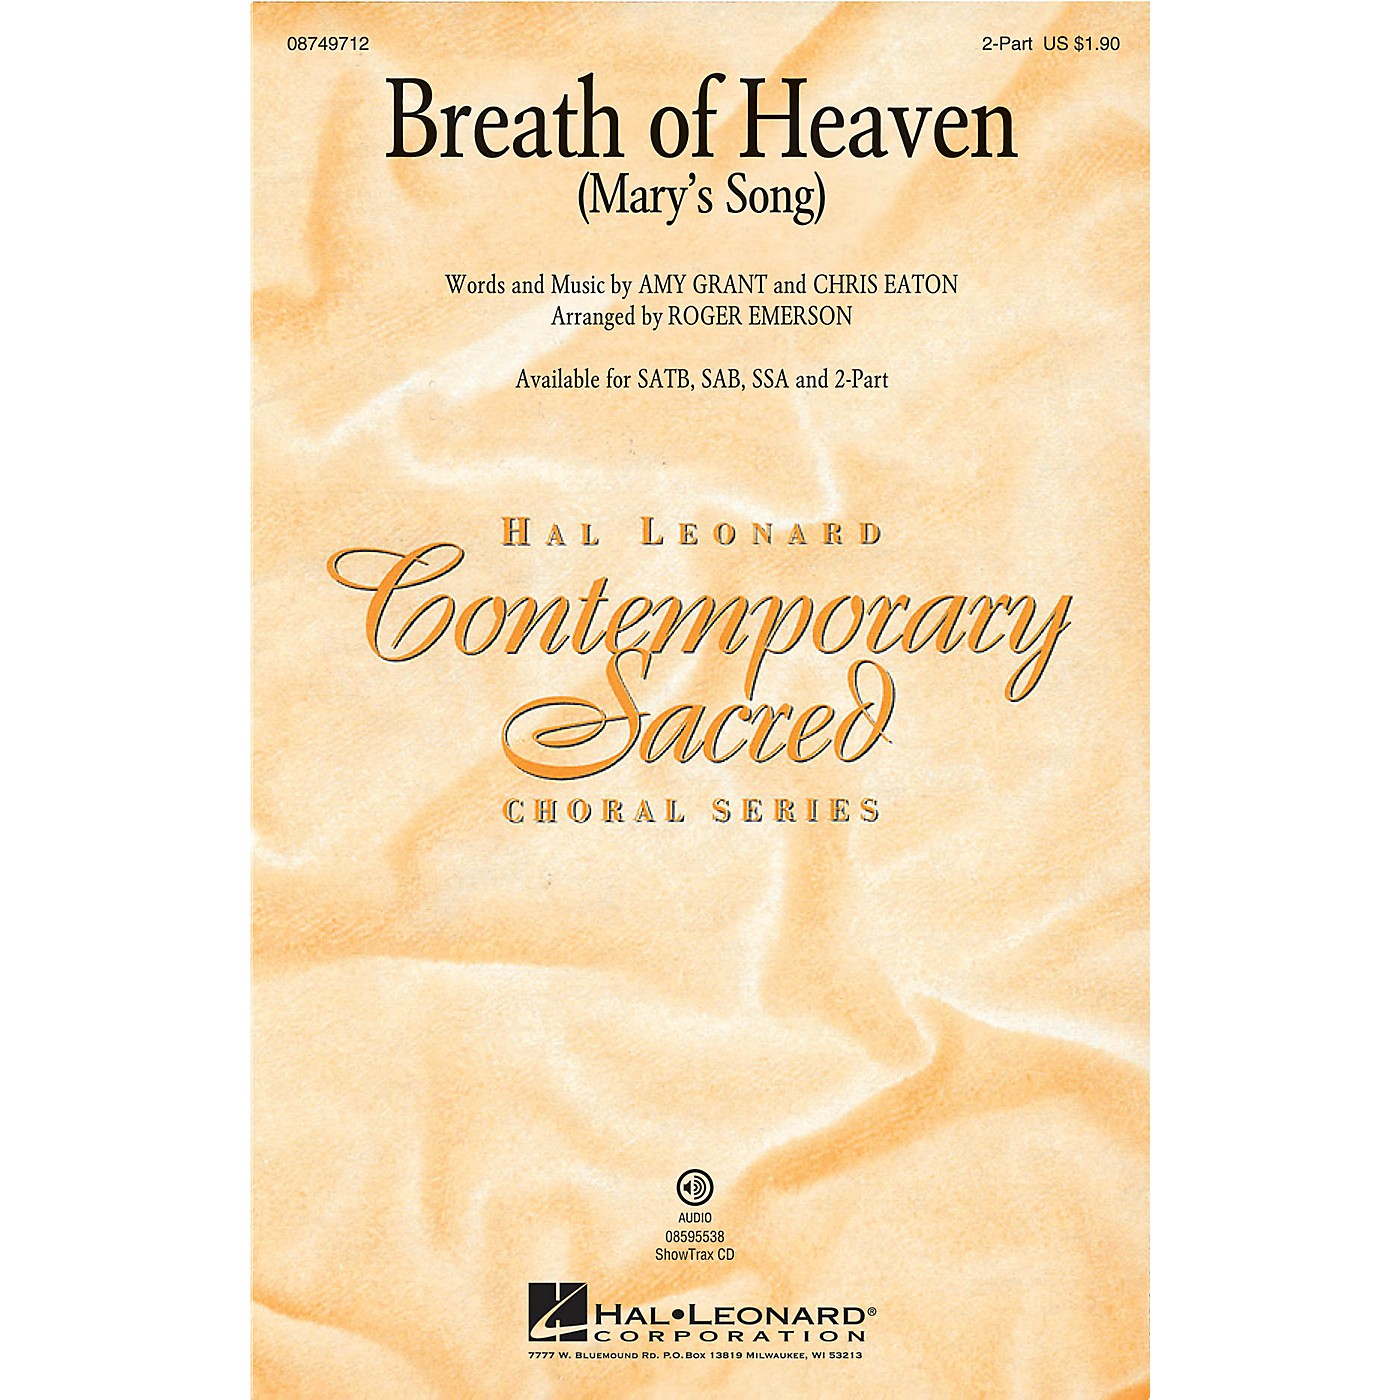 Hal Leonard Breath of Heaven (Mary's Song) 2-Part by Amy Grant arranged by Roger Emerson thumbnail